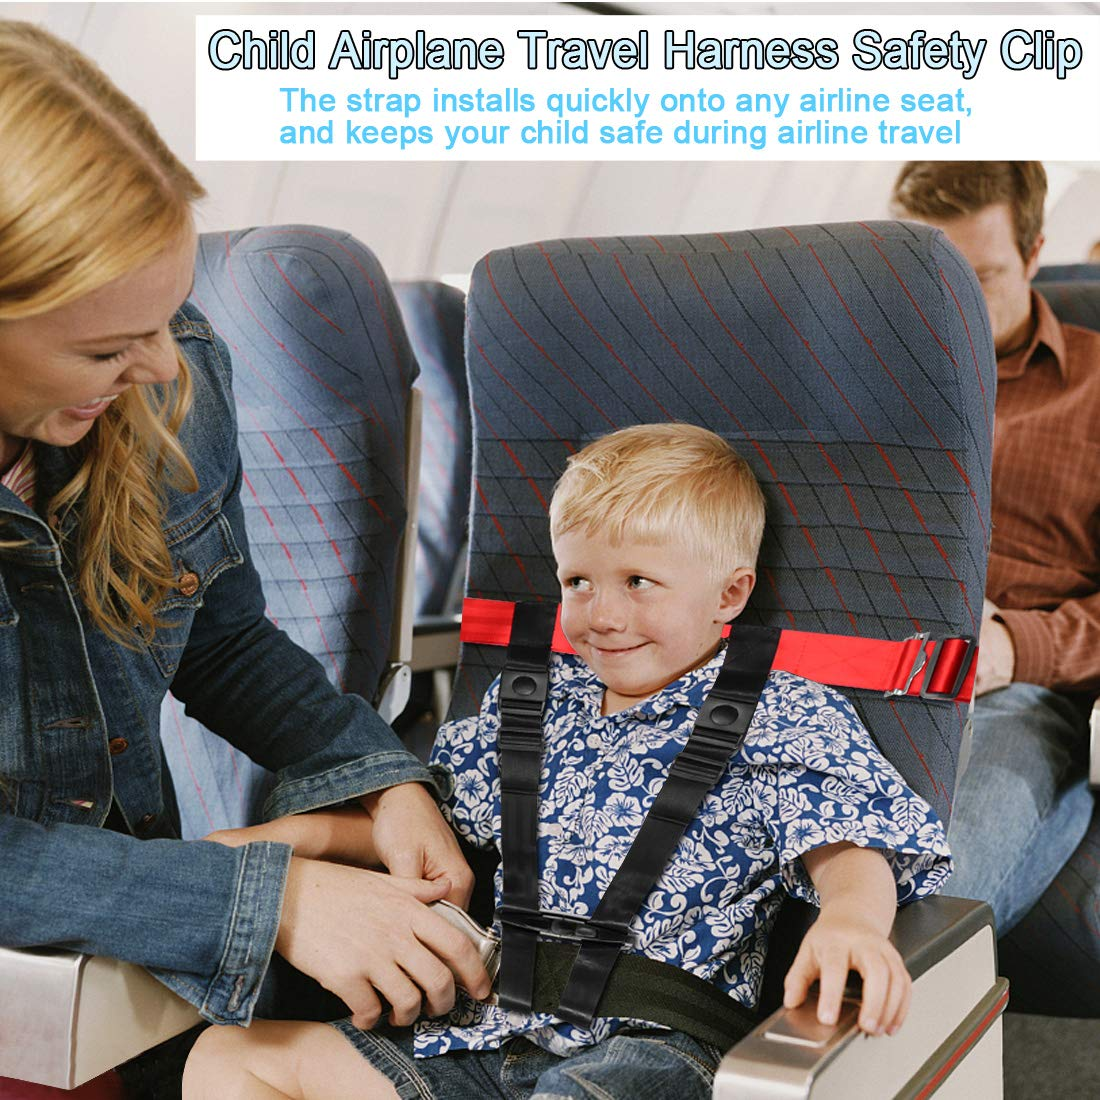 Child Airplane Travel Harness Safety Clip Strap Restraint System for Baby, Toddlers & Kids- for Airplane Travel Use Only by Together-life (Image #2)